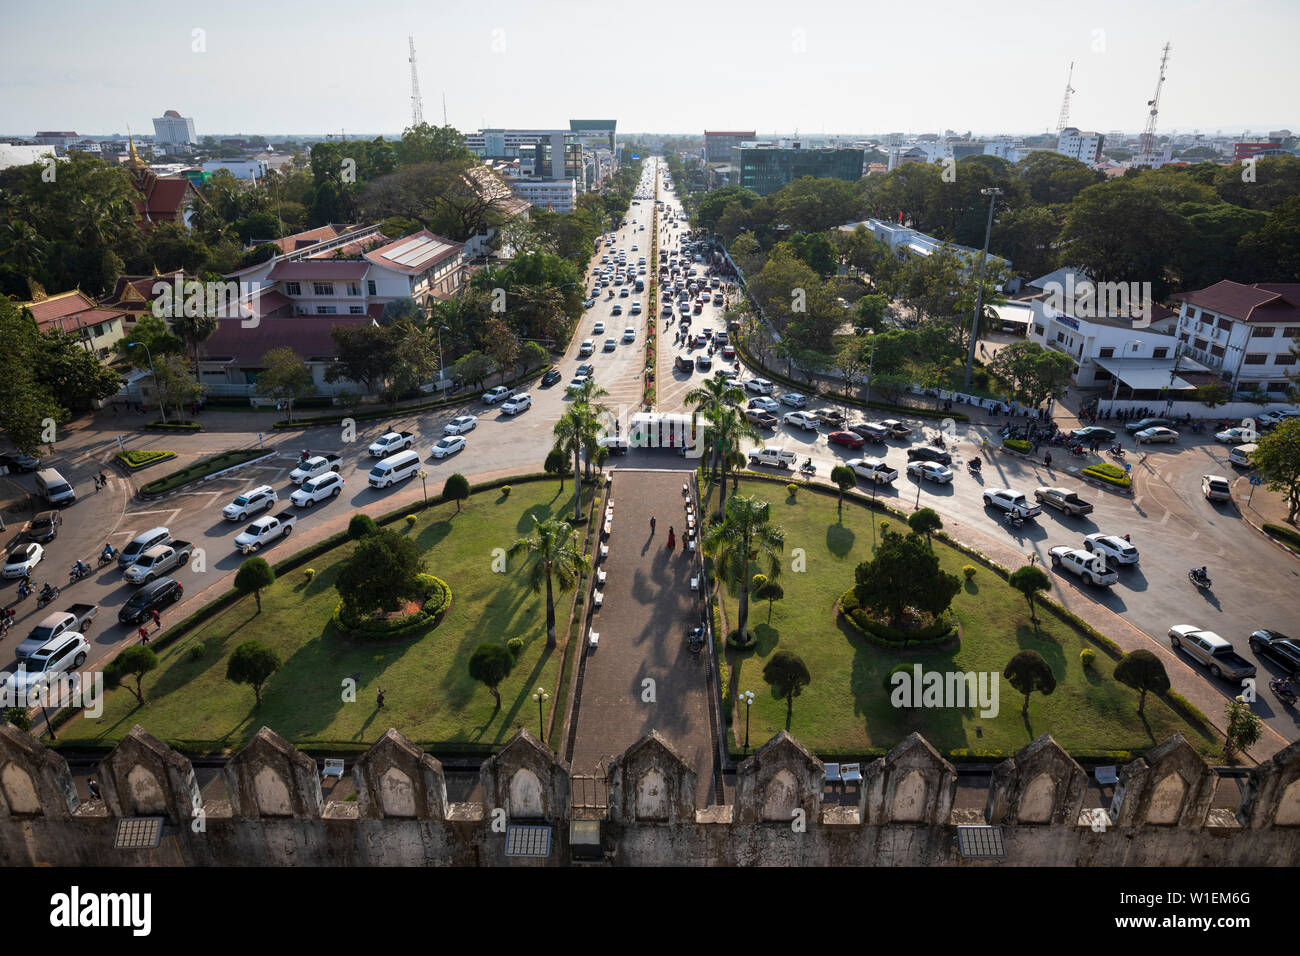 Lane Xang Avenue viewed from top of the Patuxai Victory Monument (Vientiane Arc de Triomphe), Vientiane, Laos, Indochina, Southeast Asia, Asia Stock Photo